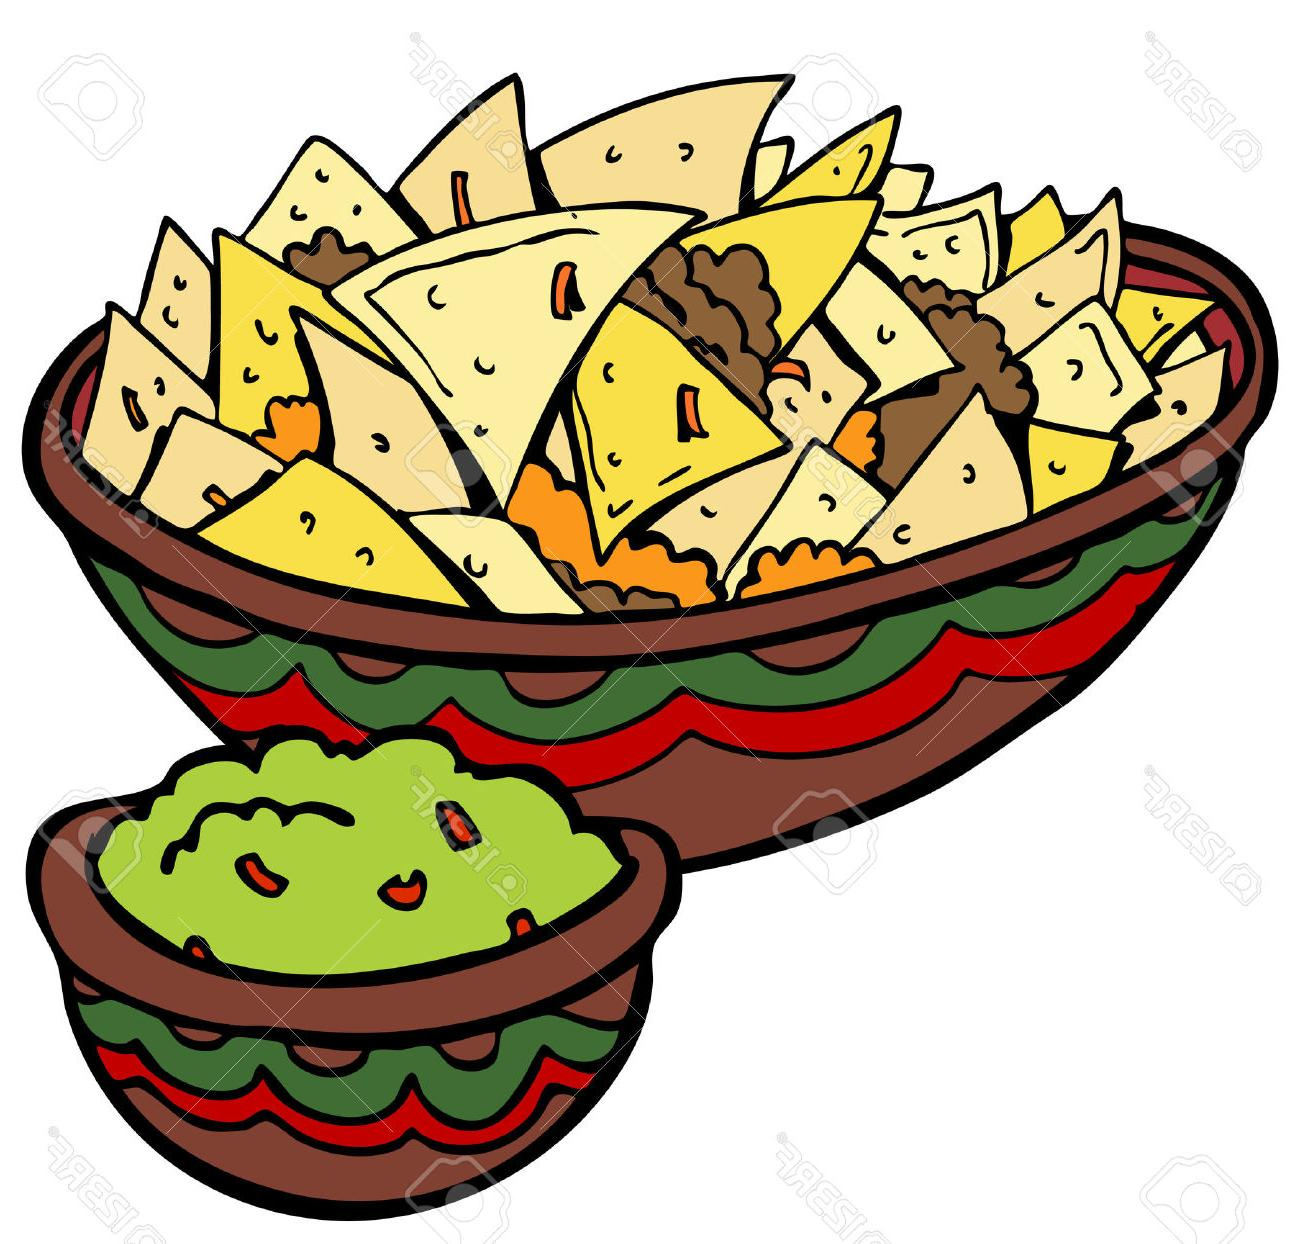 svg transparent stock Nachos clipart vector. Free download best on.